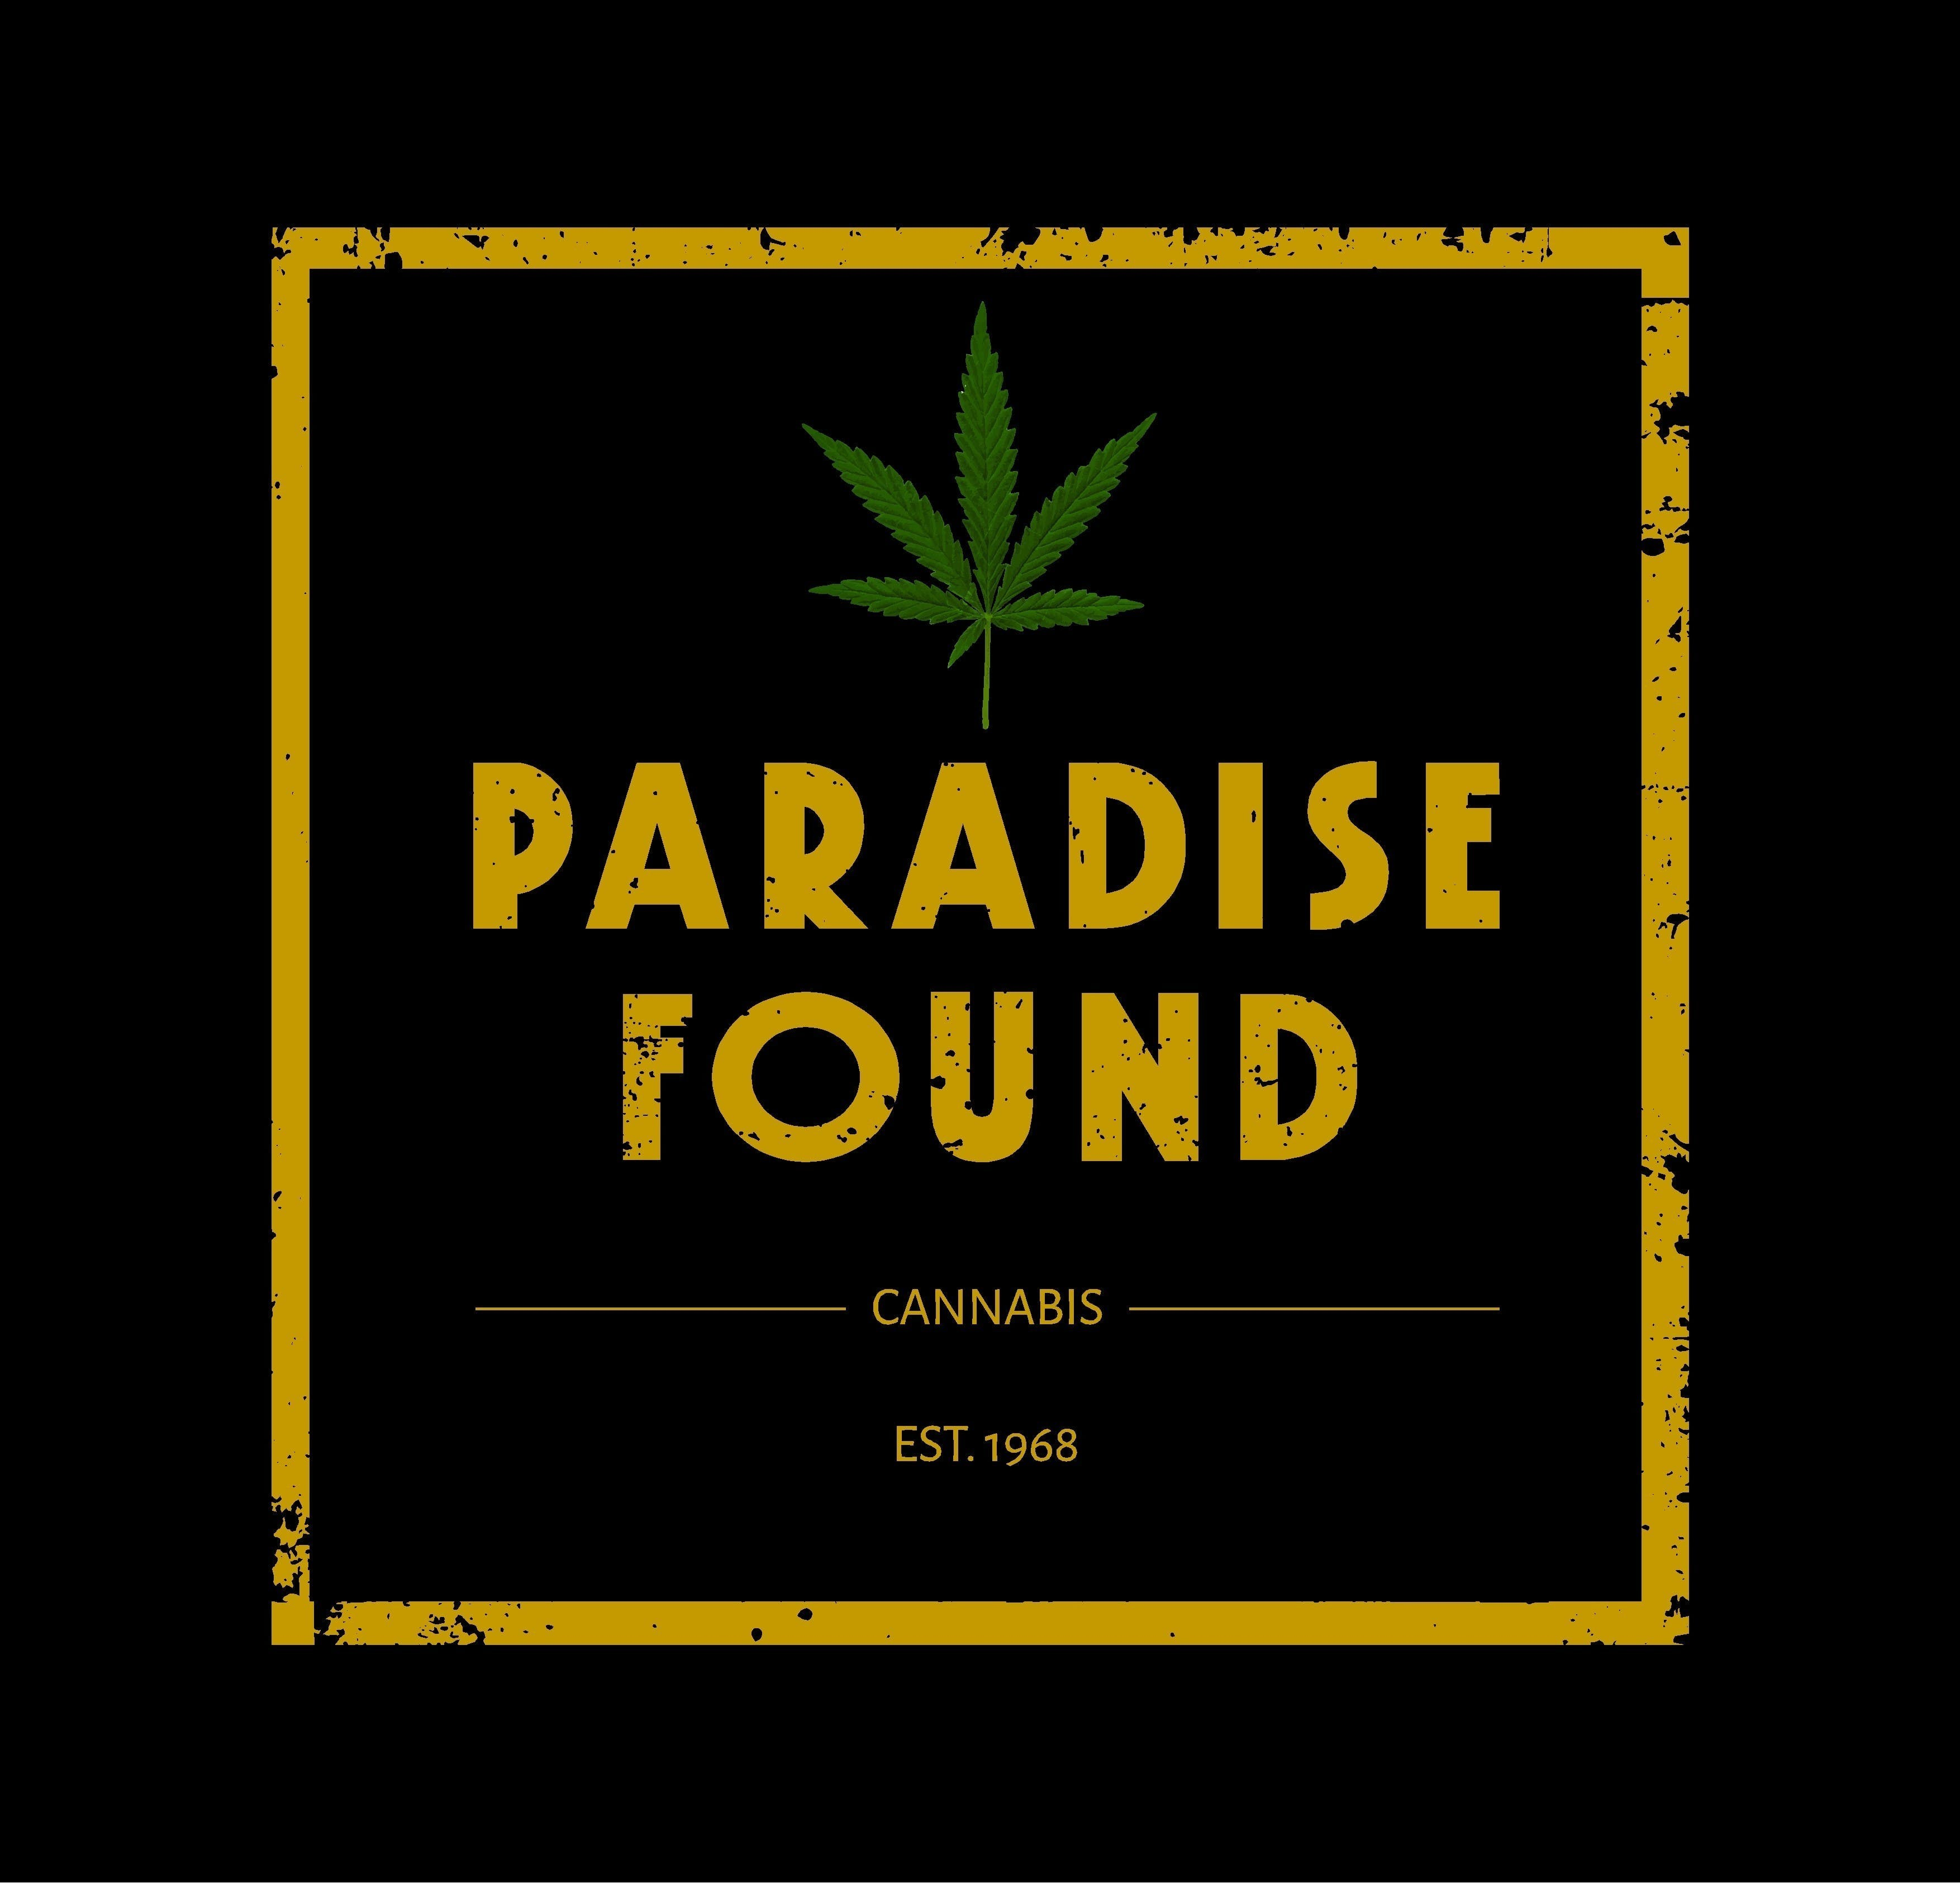 Paradise Found - Medical Marijuana Doctors - Cannabizme.com